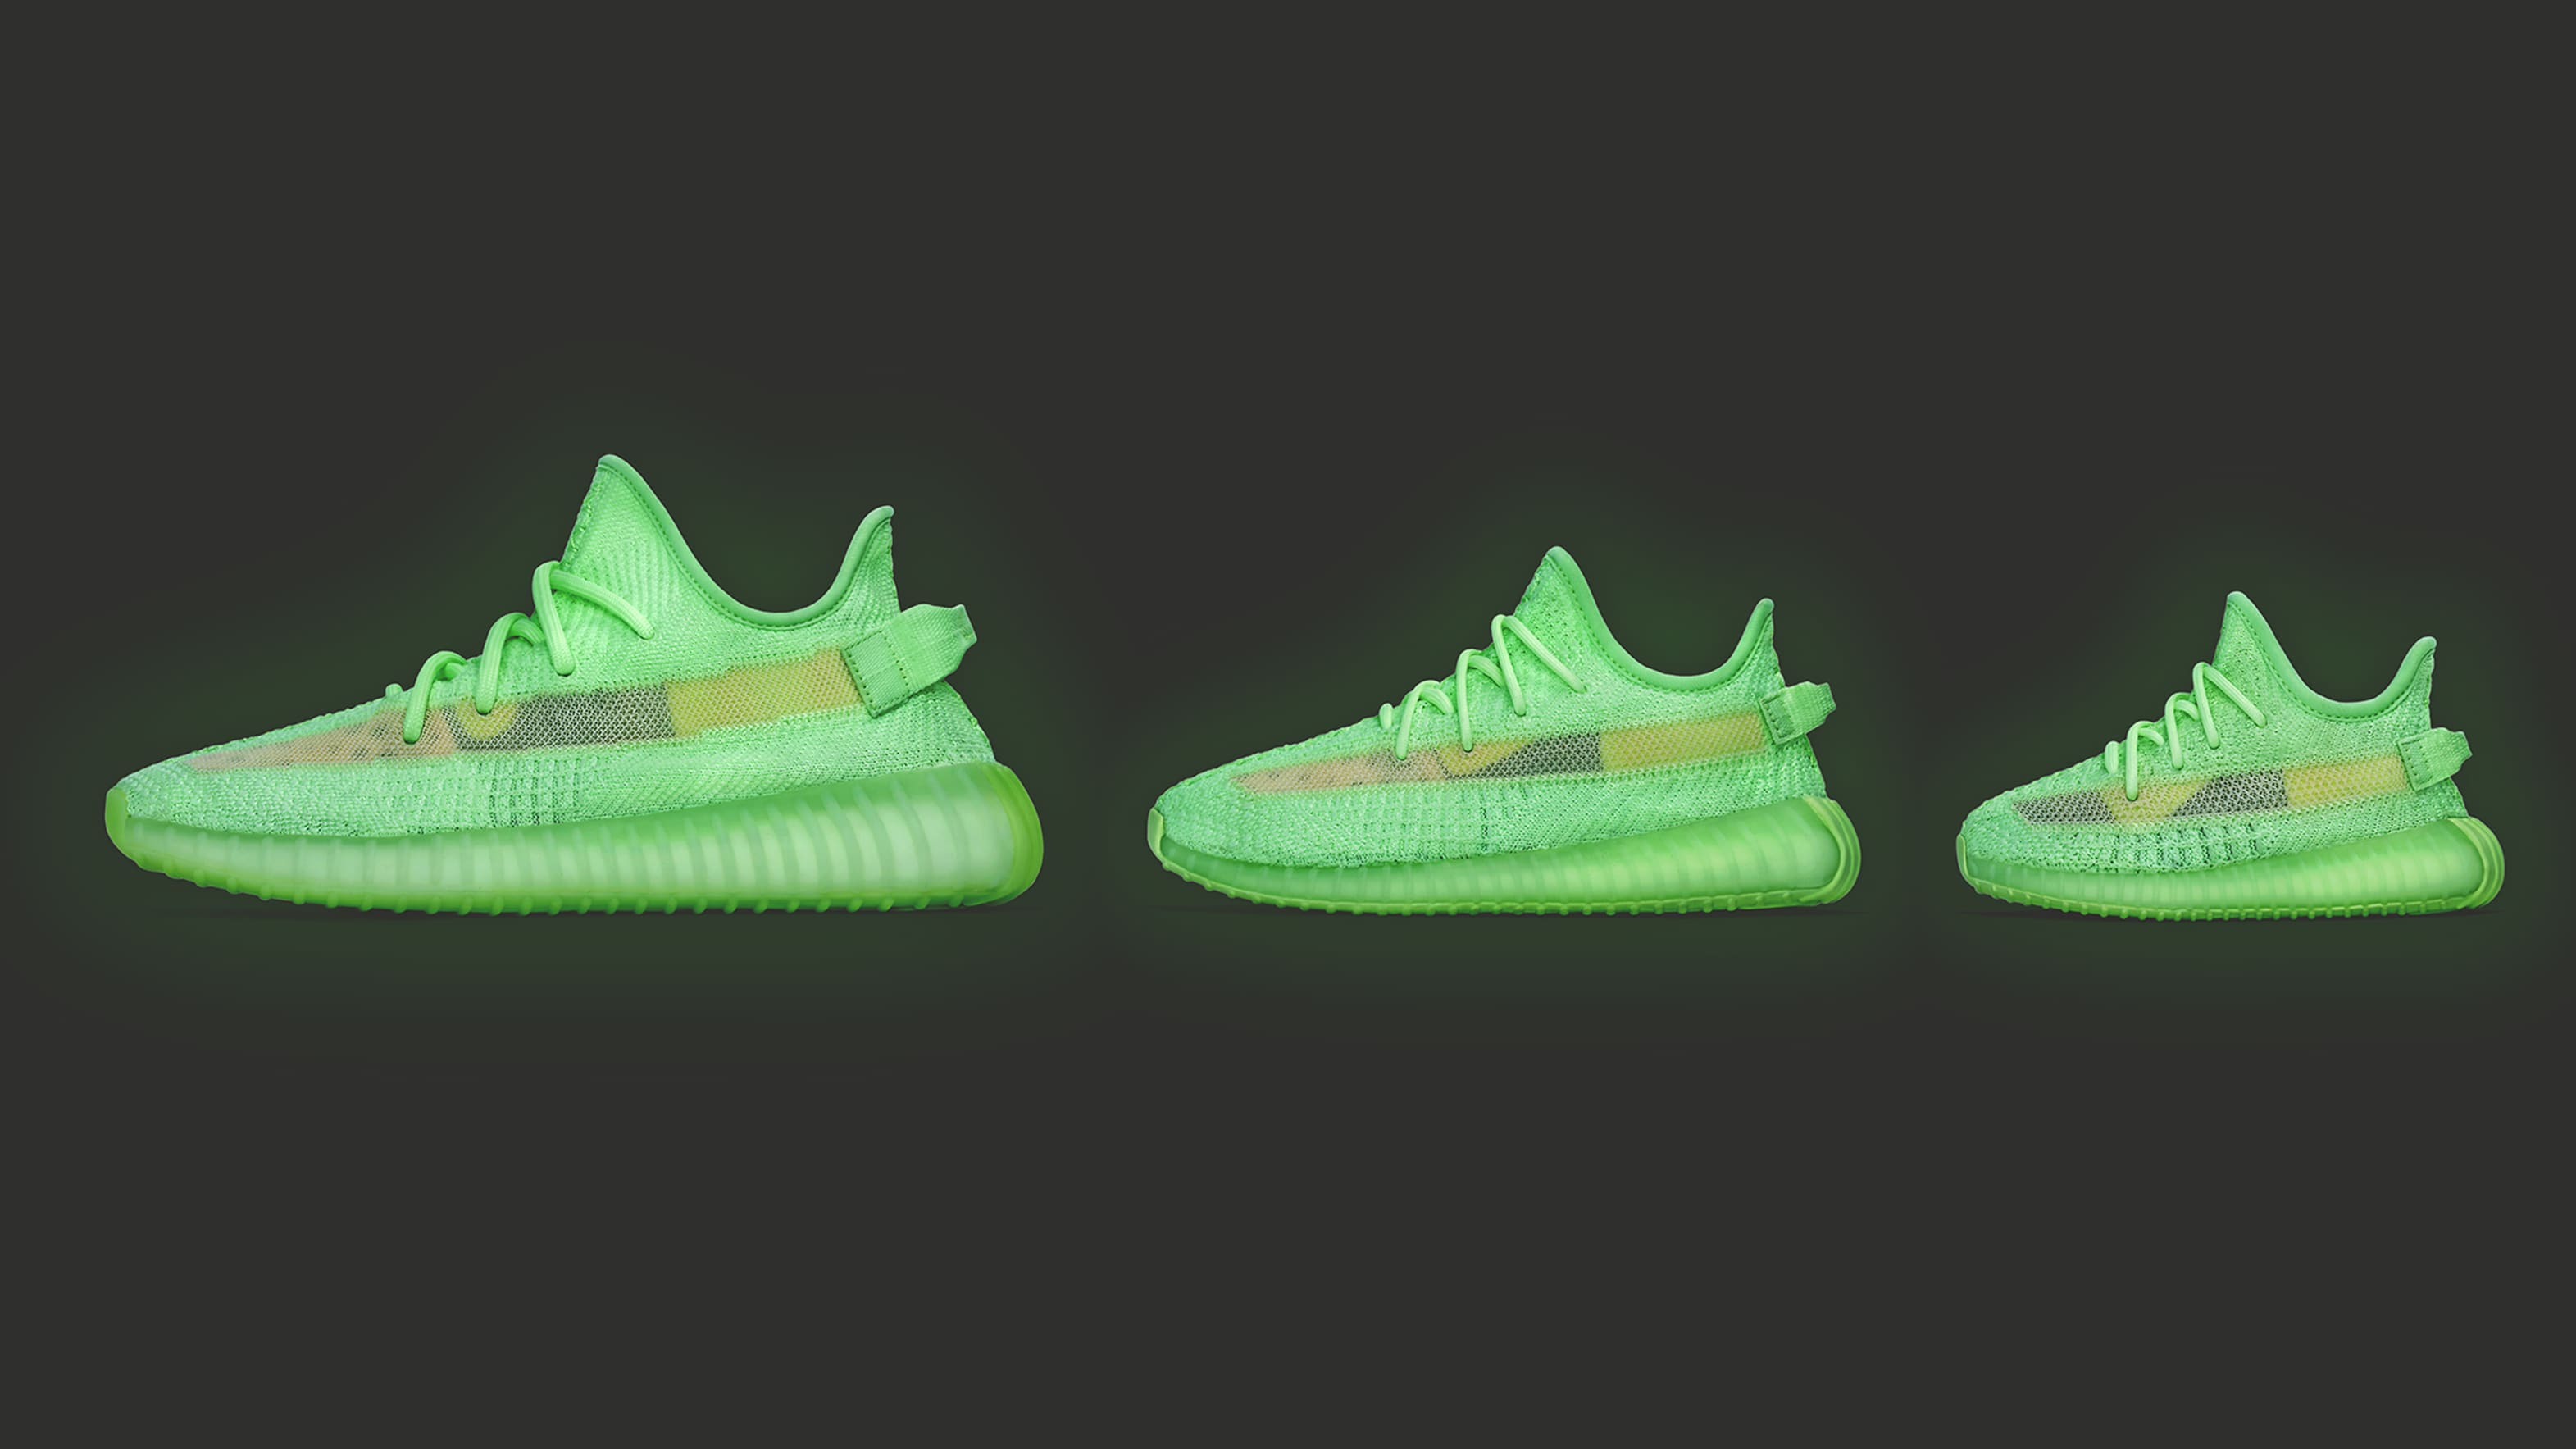 huge selection of 08f69 7f2a9 Adidas Yeezy Boost 350 V2 'Glow in the Dark' Release Date ...